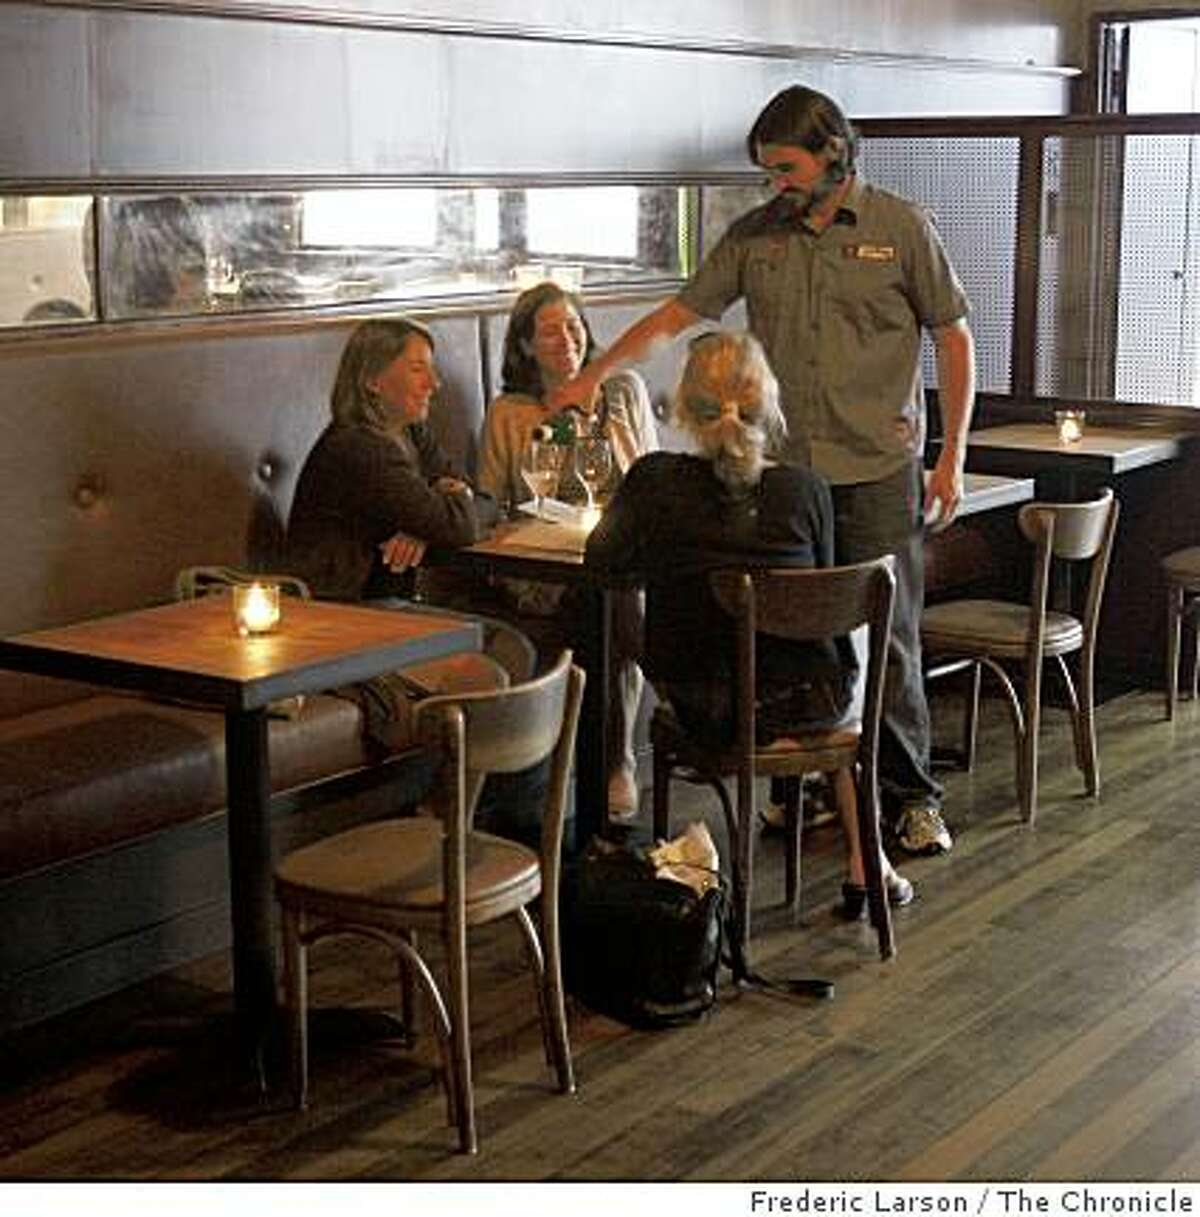 Bar restaurant 15 Romolo is located off Broadway in San Francisco has a main dinning room opened to the bar where people eat and drink.